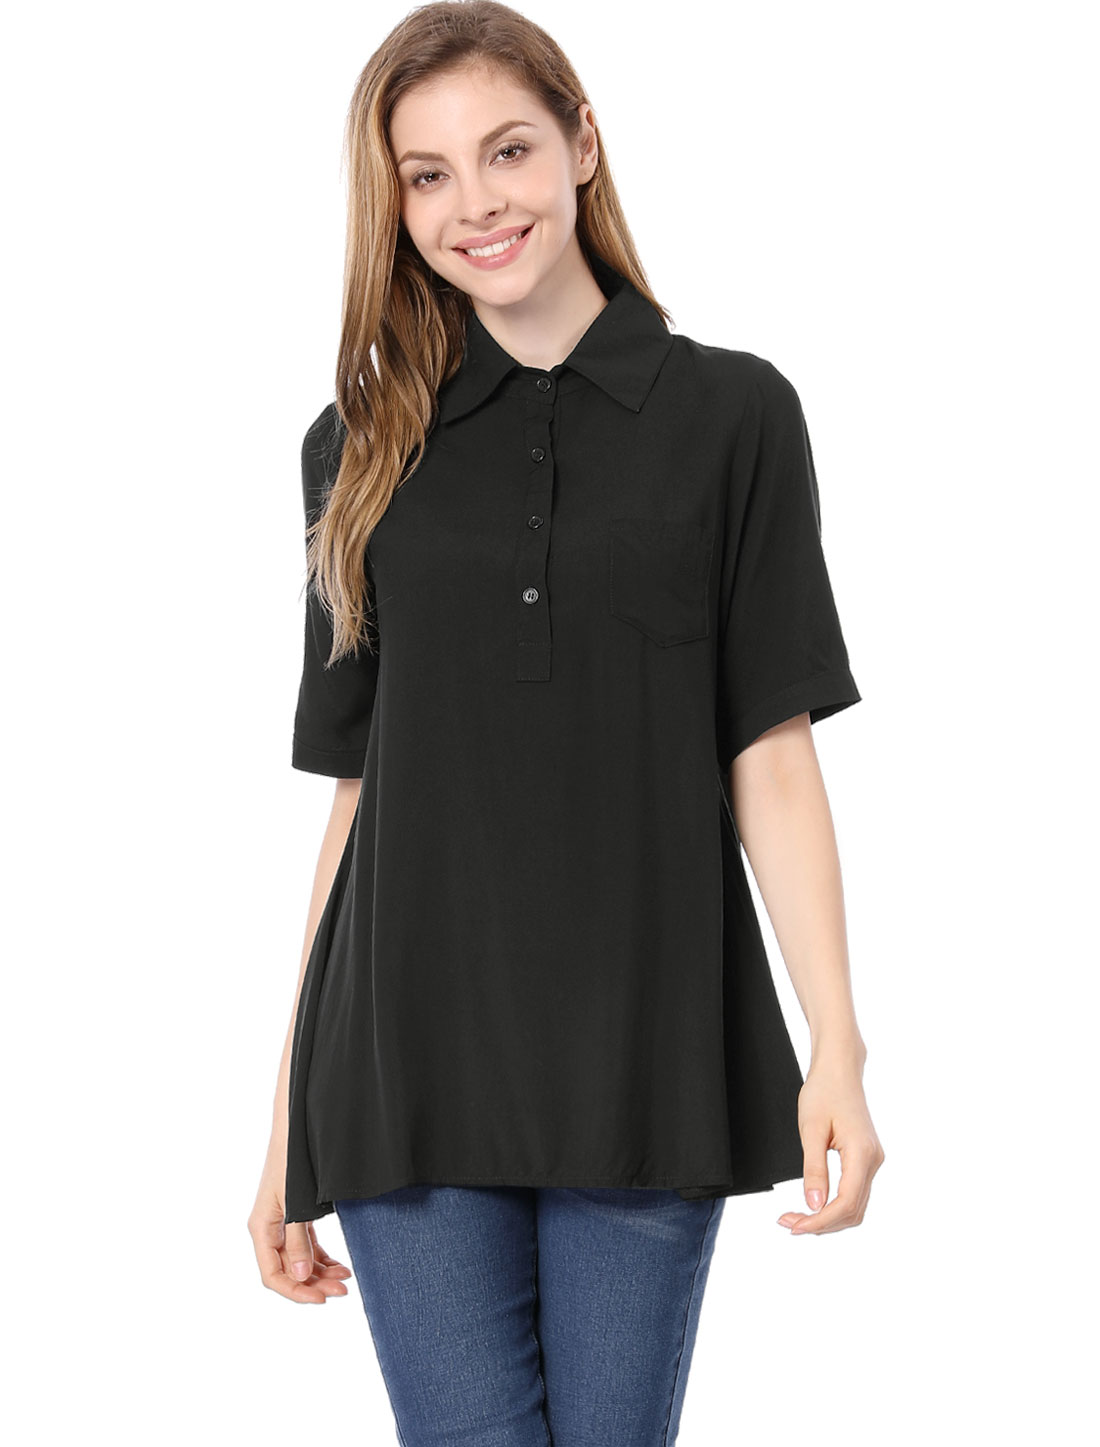 Woman Fashion Uneven Hem Design 1/2 Placket Loose Shirt Black S